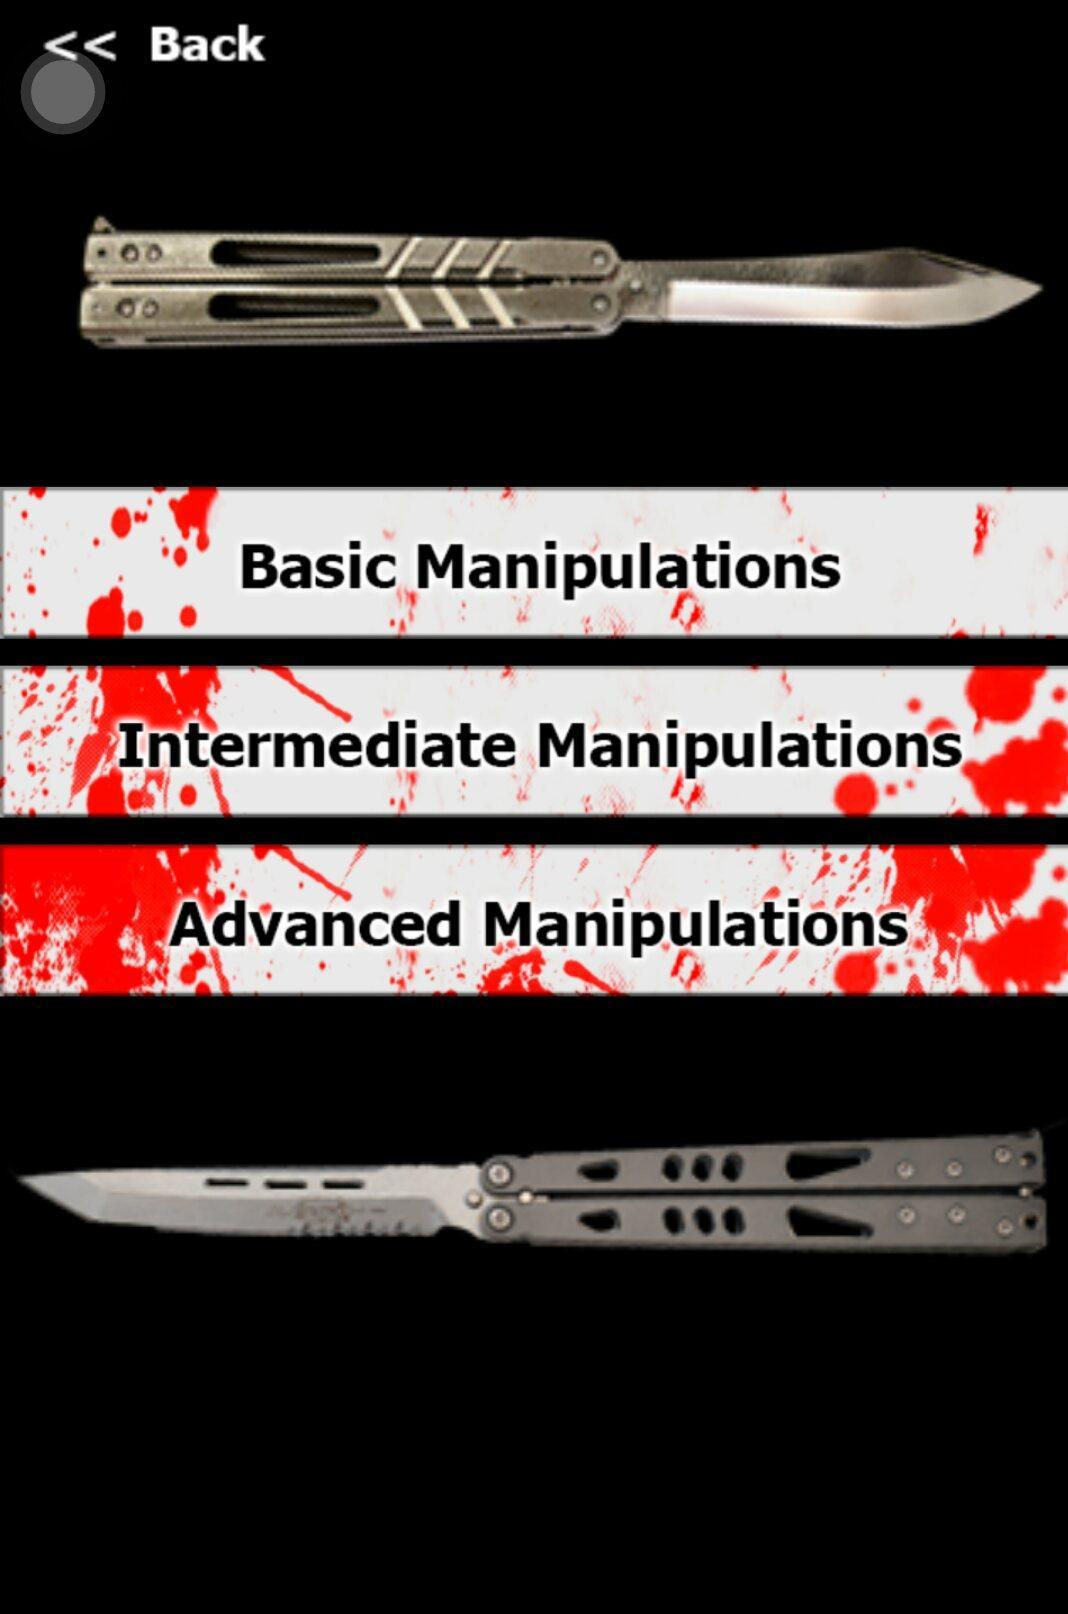 Balisong Tutorials Free For Android Apk Download